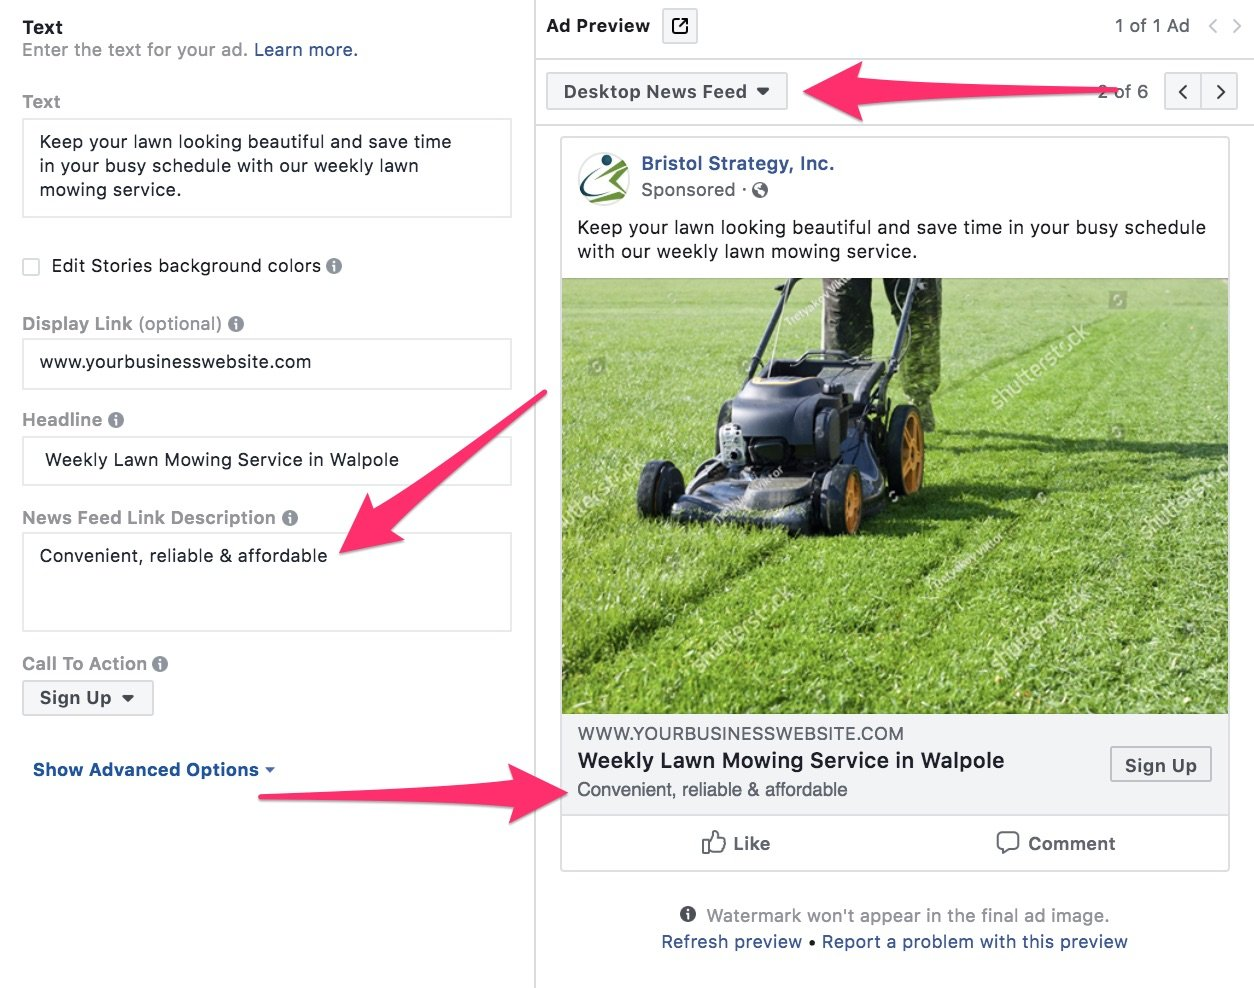 How to Advertise a Landscaping Business with Facebook